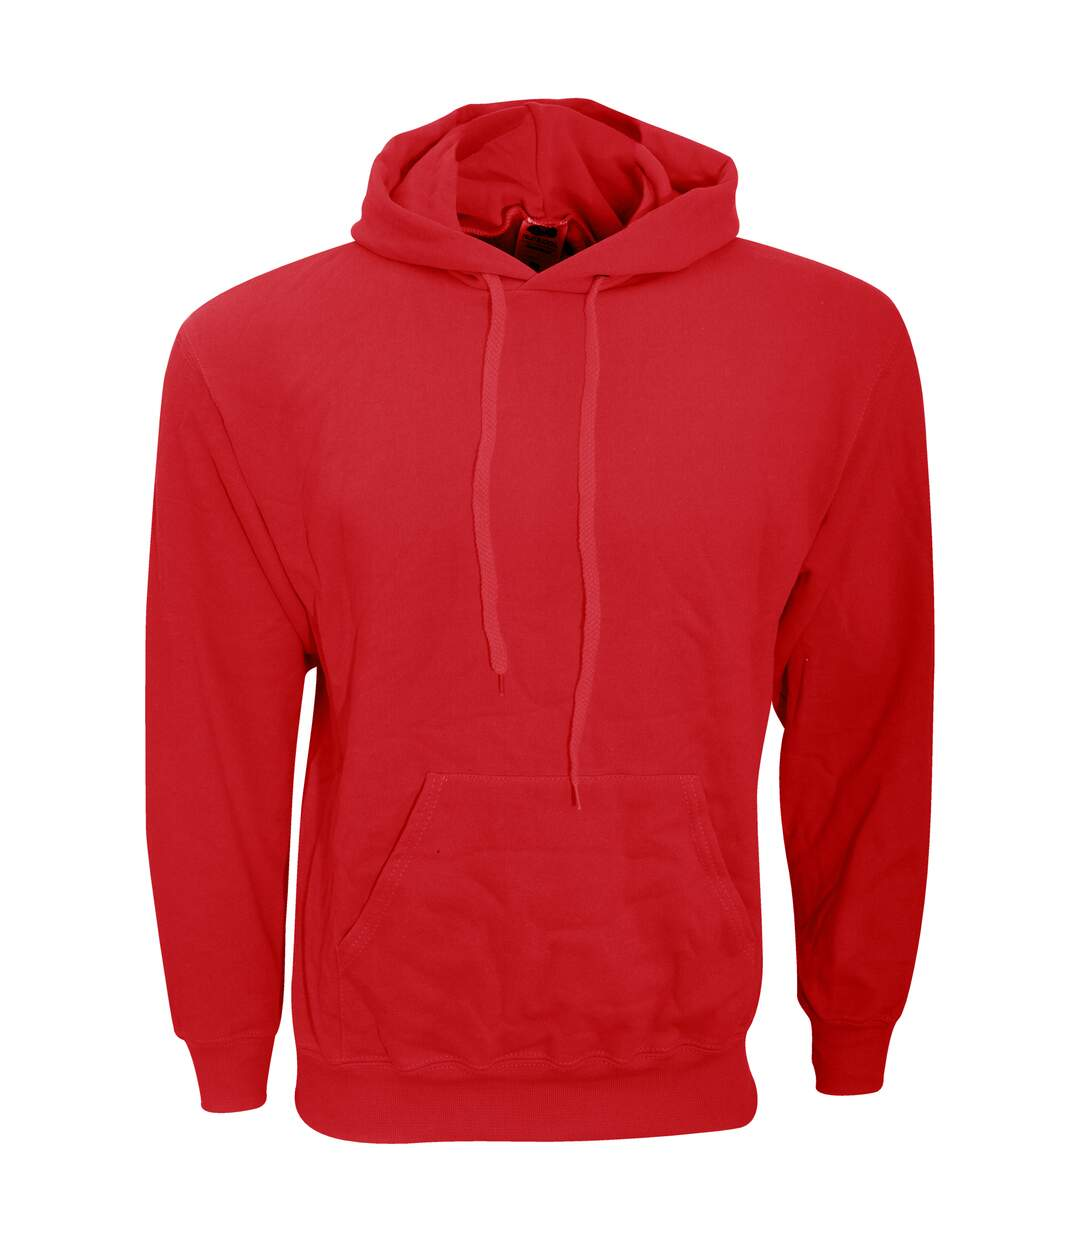 Fruit Of The Loom - Sweat À Capuche - Homme (Rouge) - UTBC366